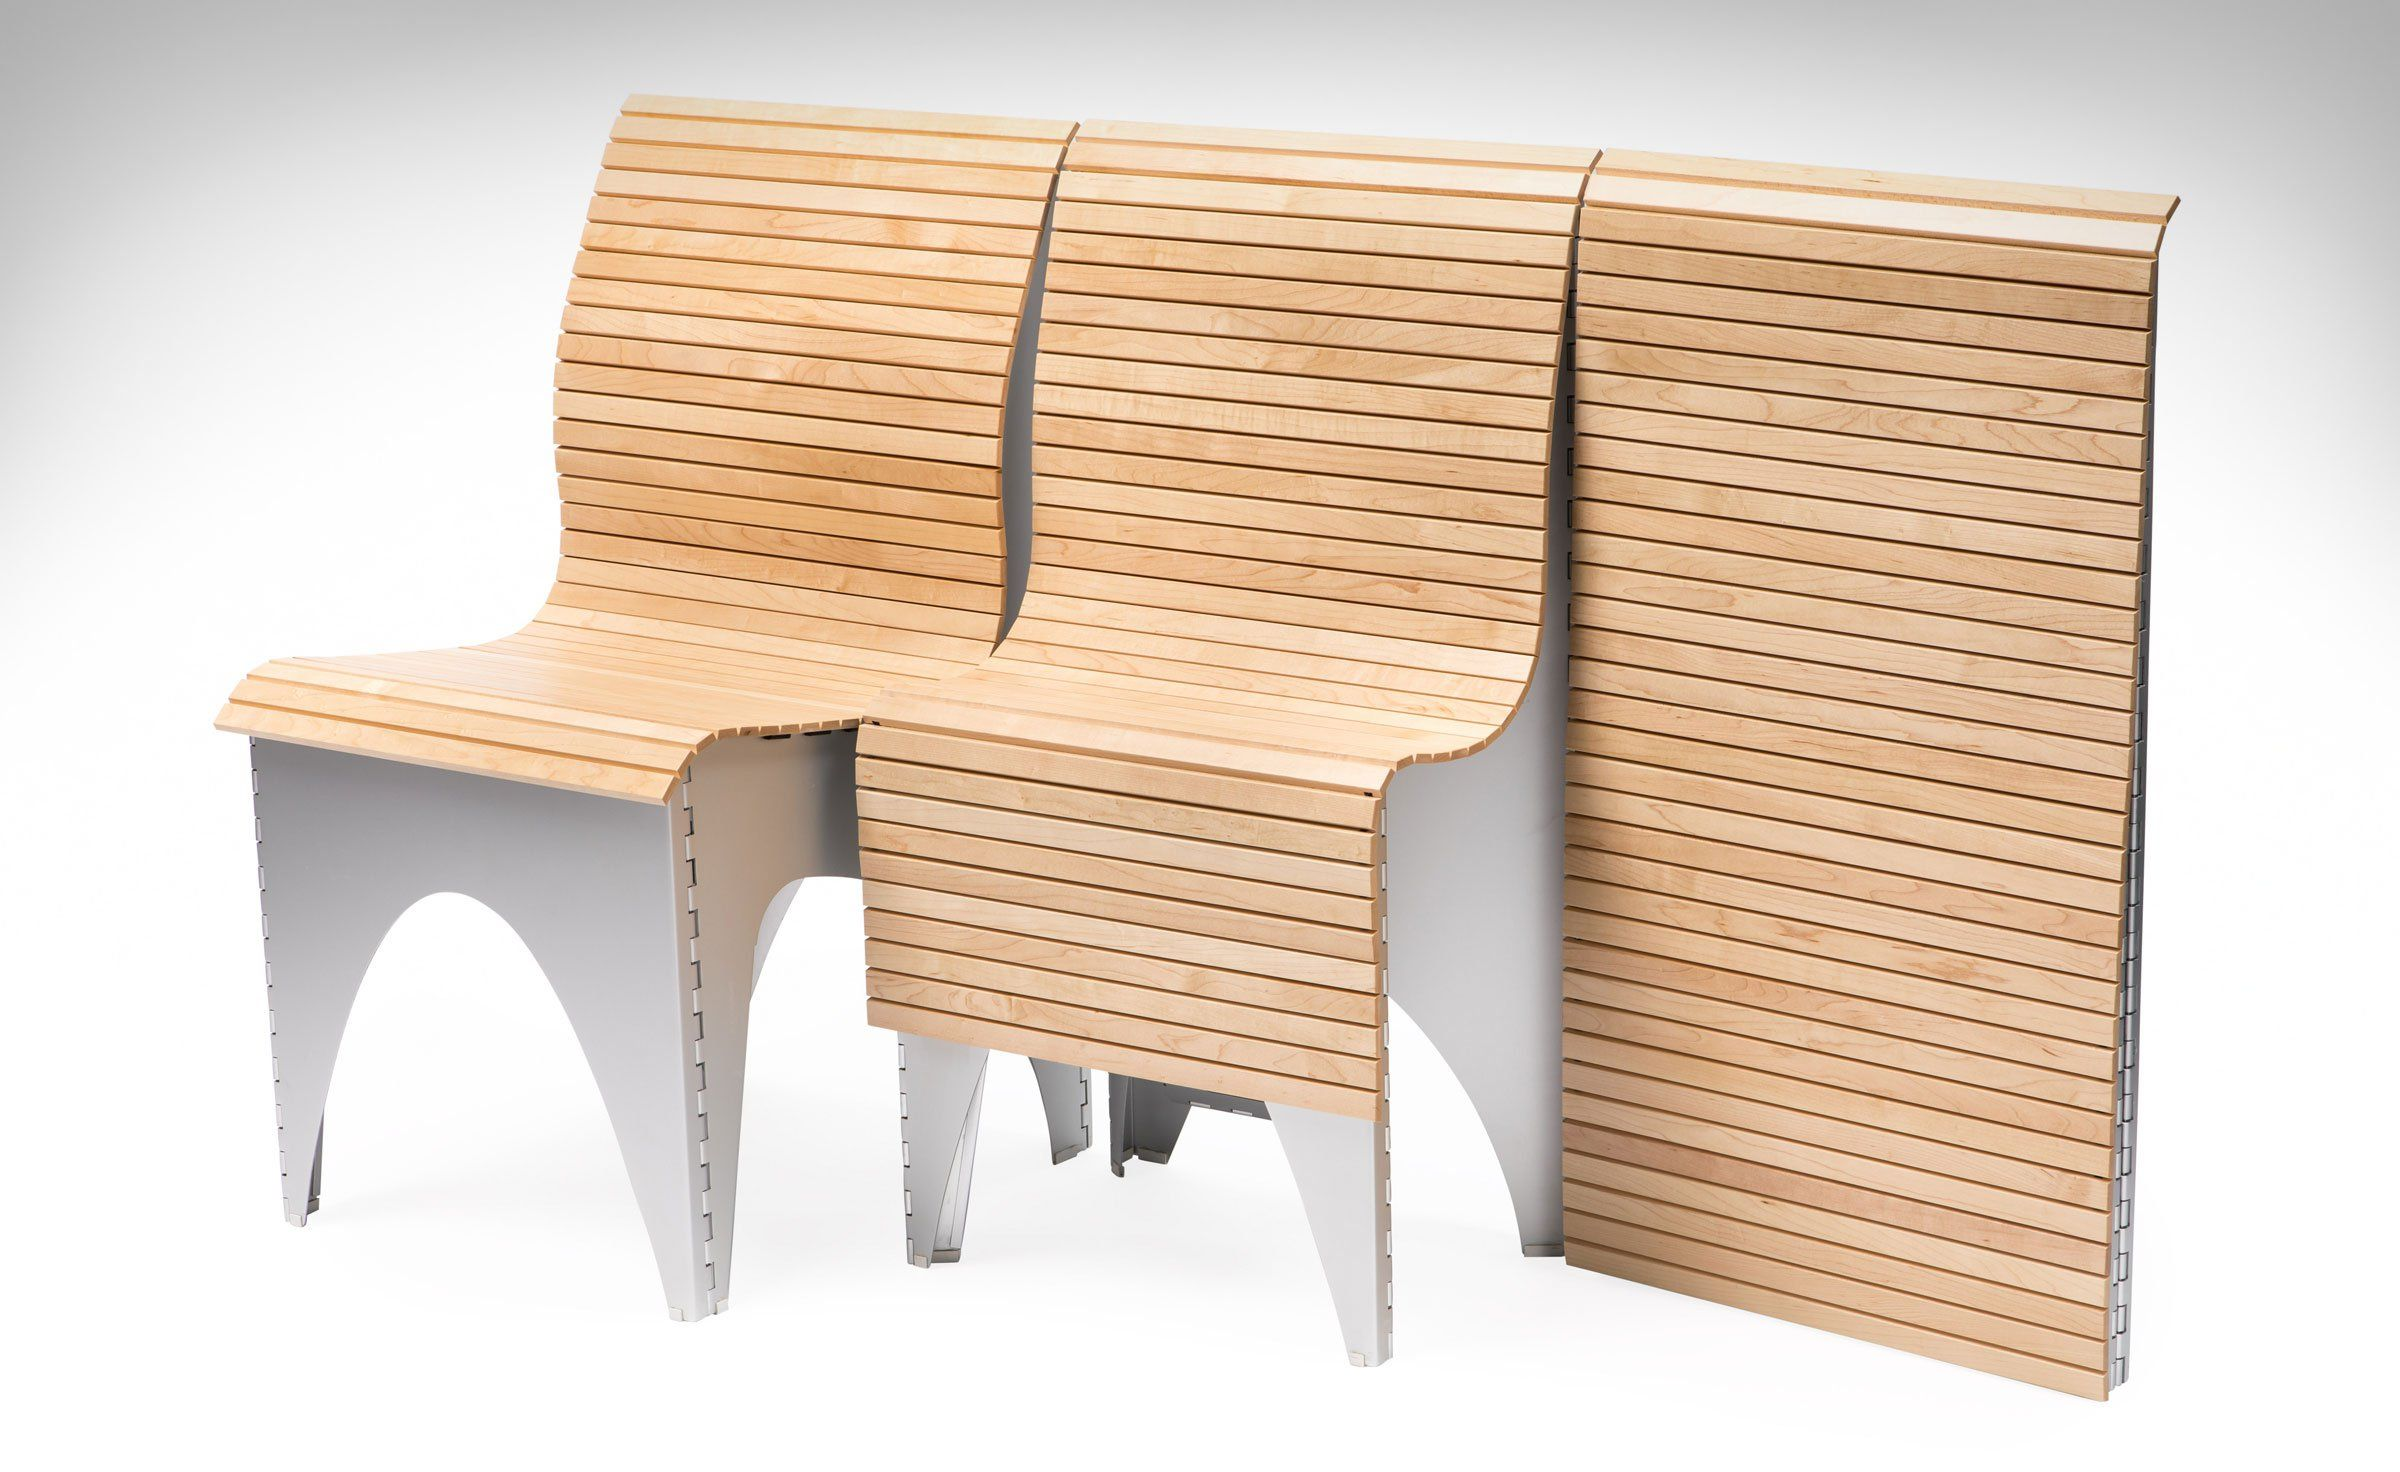 Ollie Collapsible Chair Chair Design Wooden Foldable Furniture